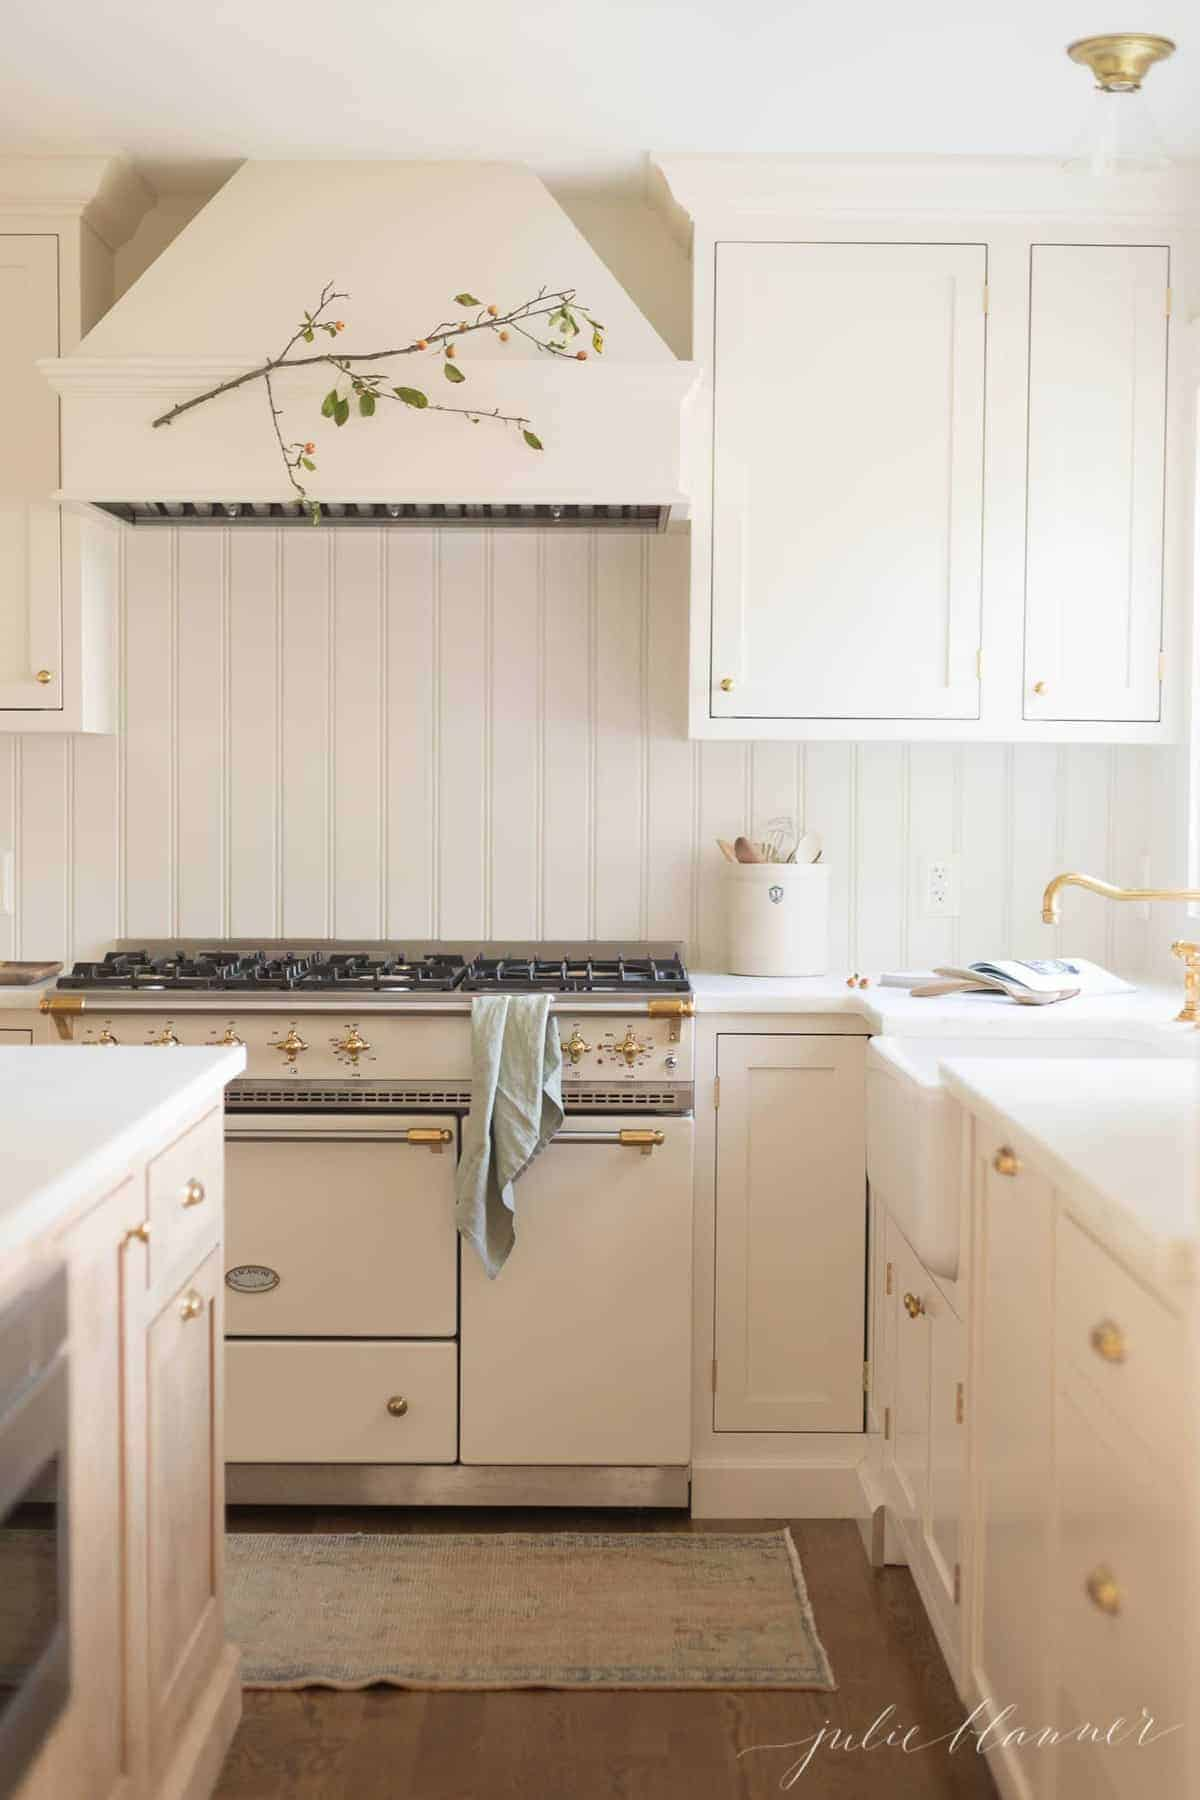 A cream and wood kitchen painted in a satin paint sheen on the cabinets.